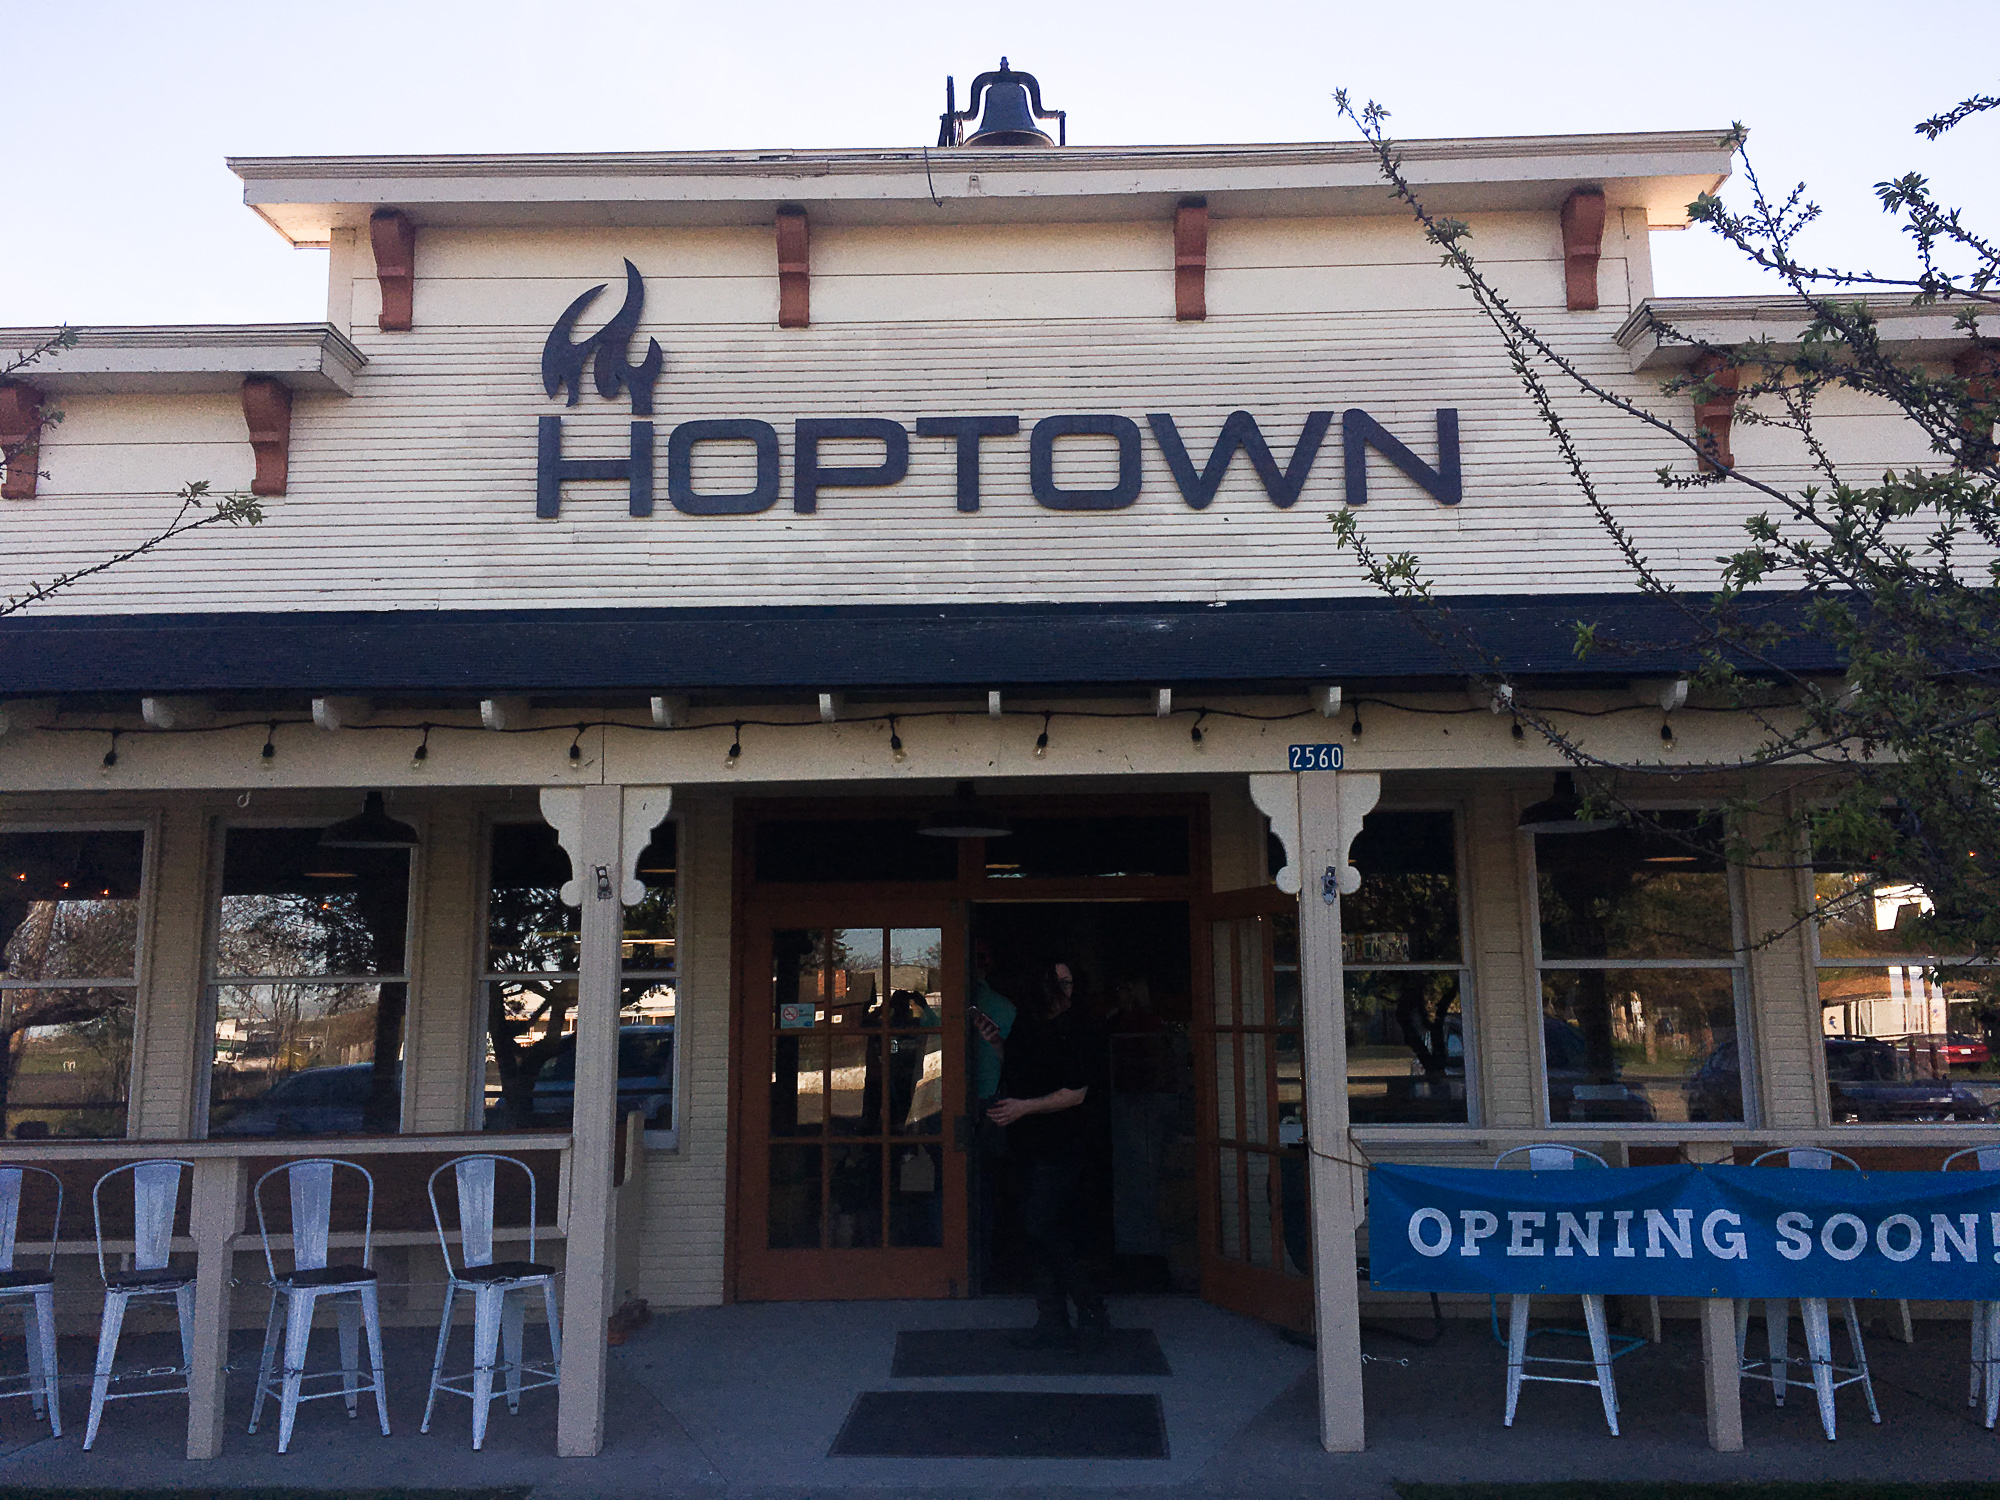 HopTown (Image: Paola Thomas/Seattle Refined)